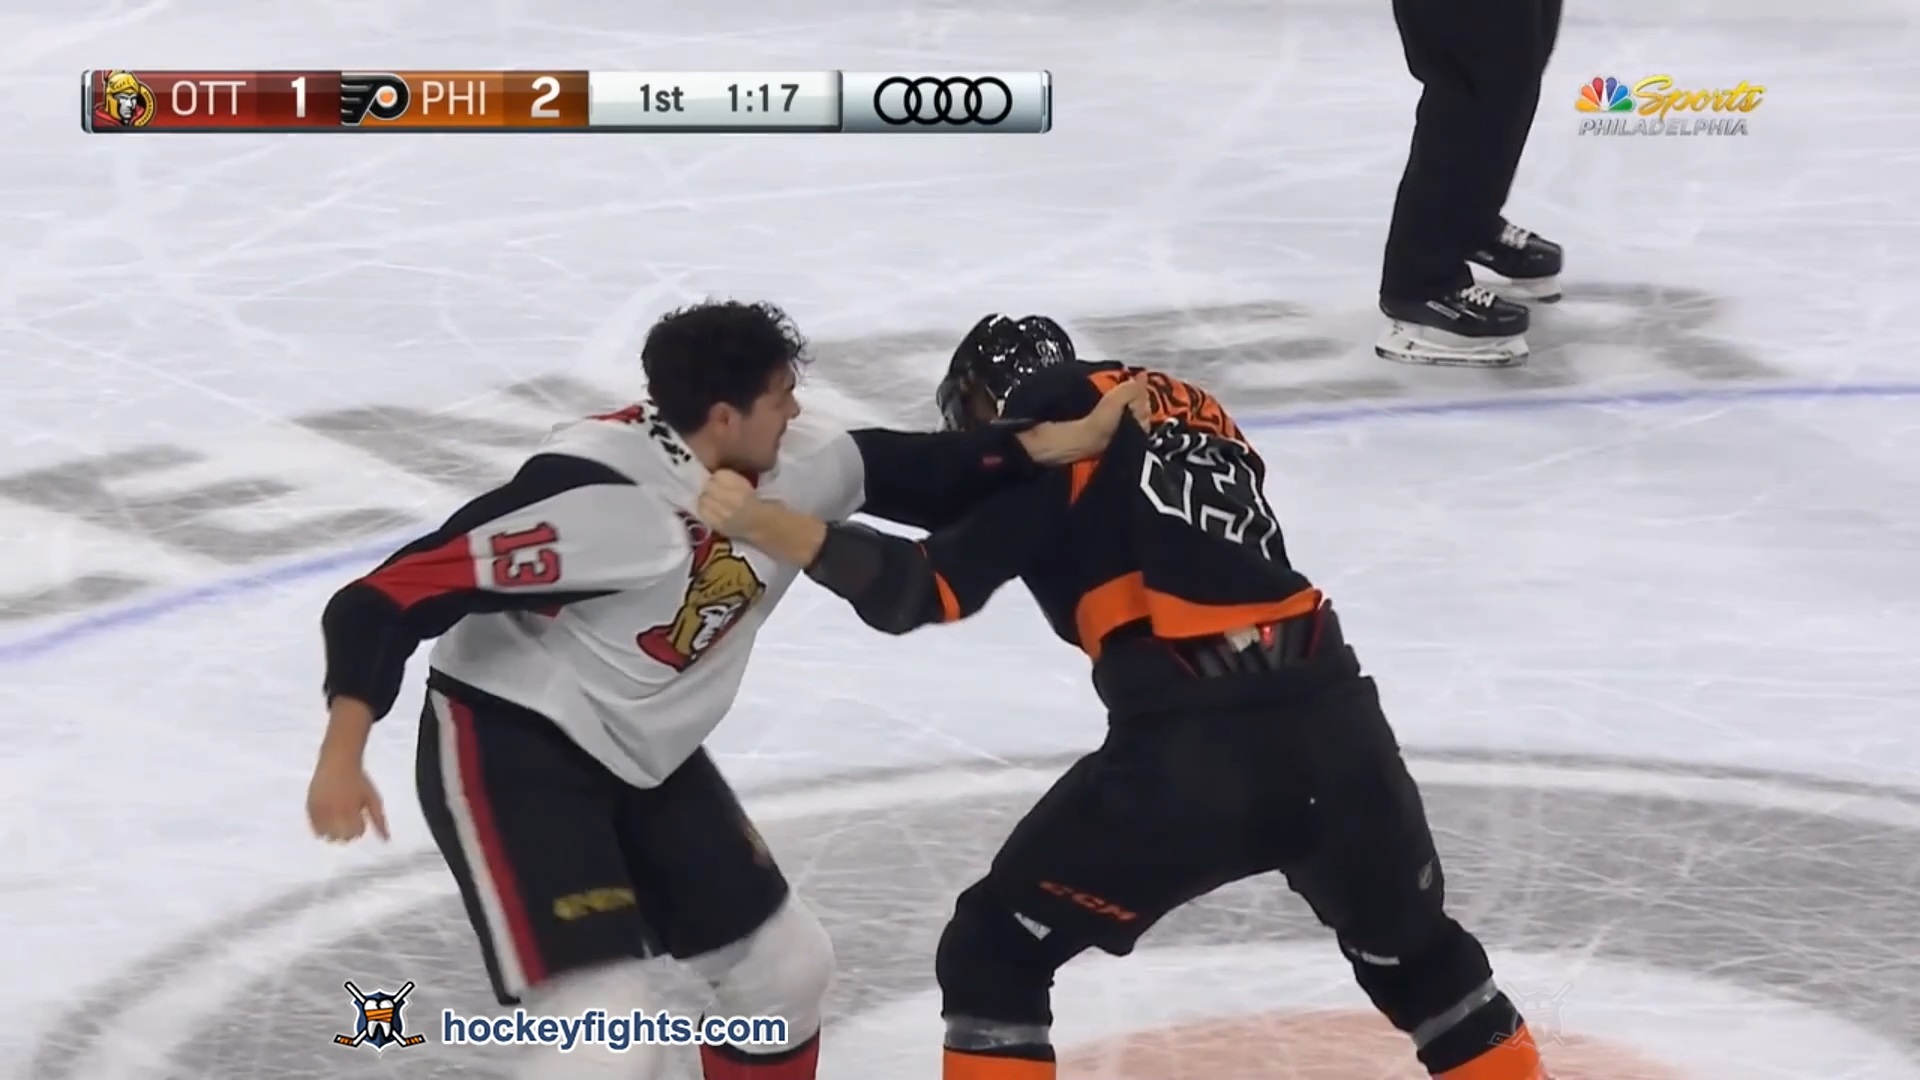 Jakub Voracek vs. Nick Paul